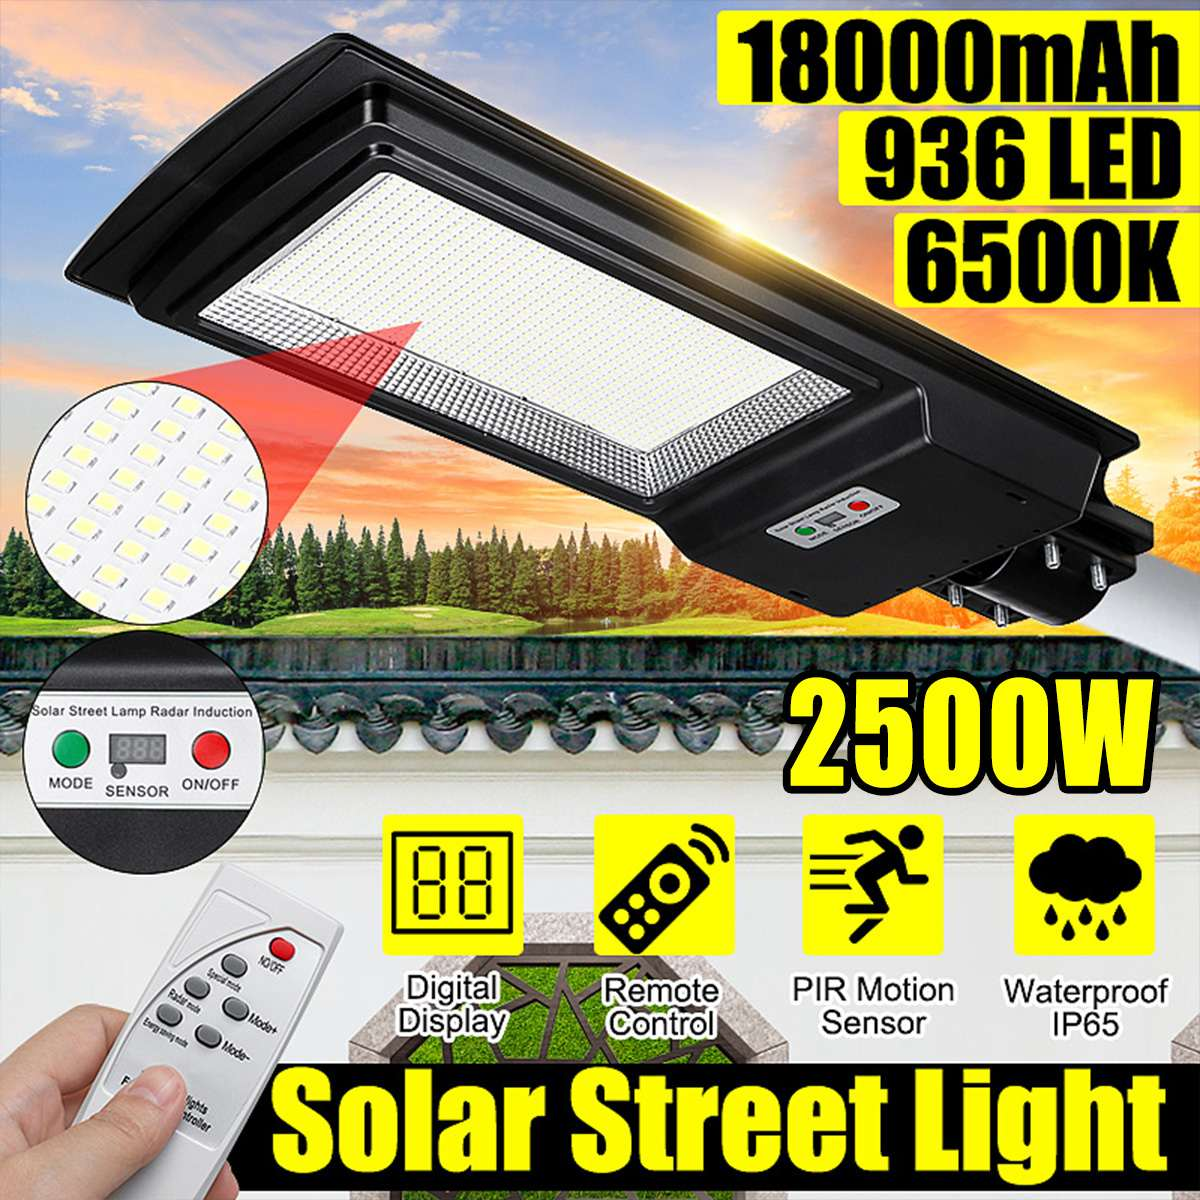 2500W Digital Display LED Solar Street Light IP65 936 LED Light Radar Motion Sensor Wall Timing Lamp+Remote For  Garden Outdoor